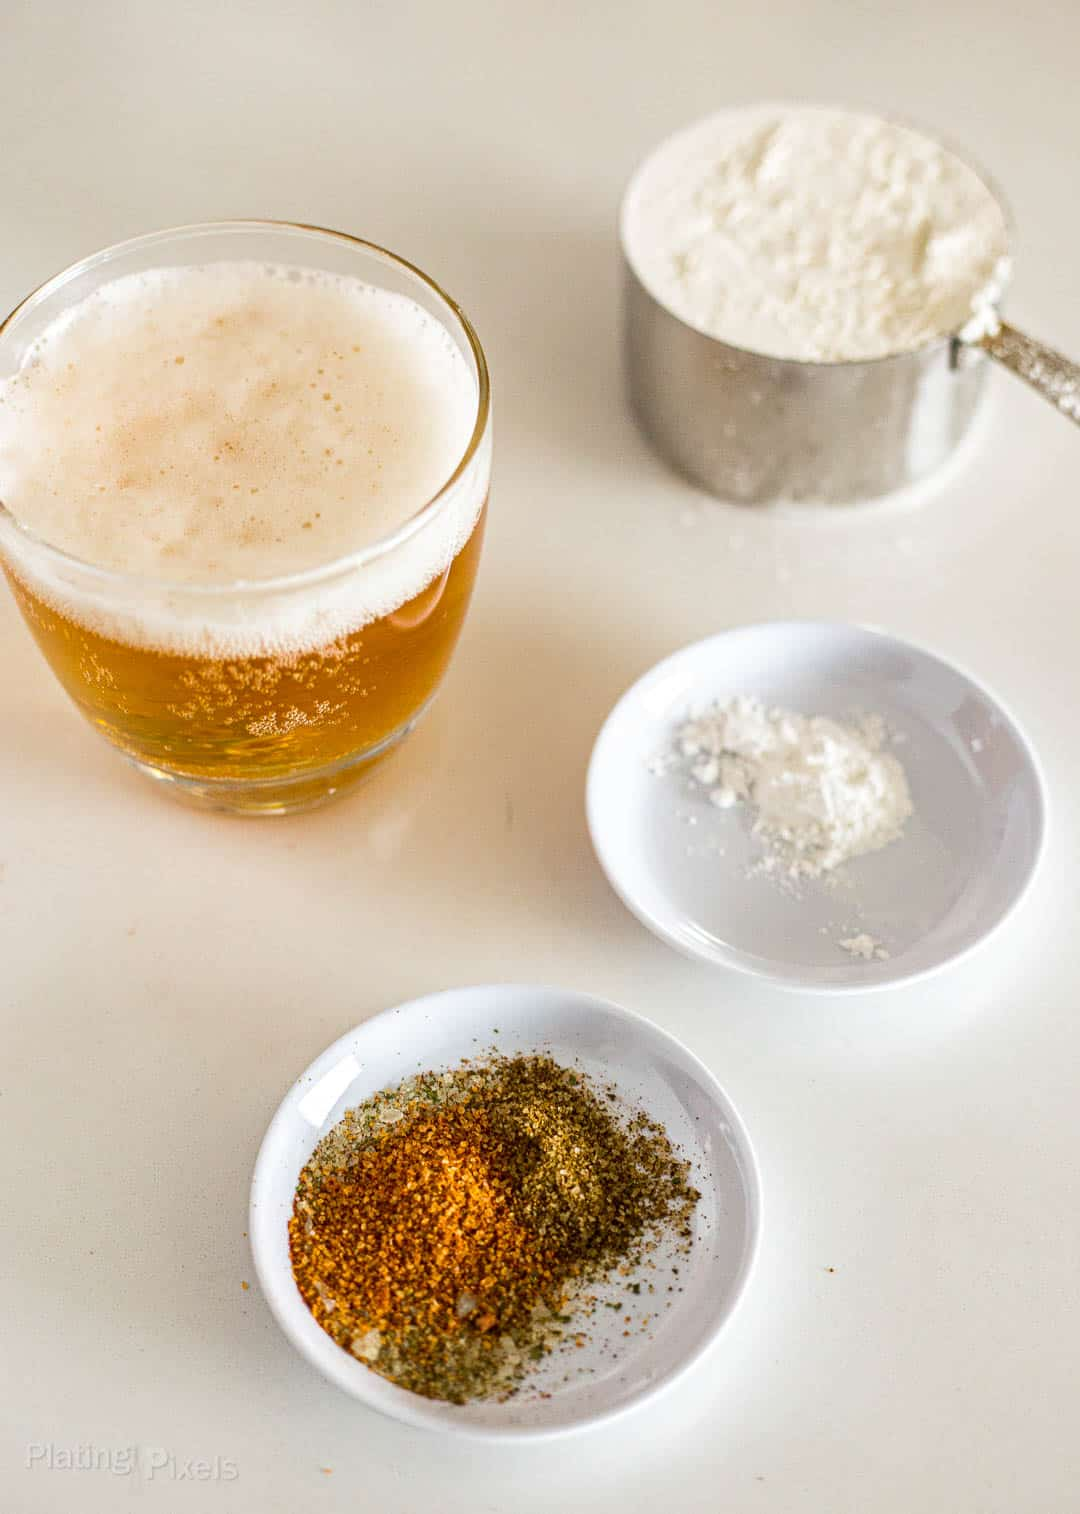 Ingredients to make beer batter on a counter